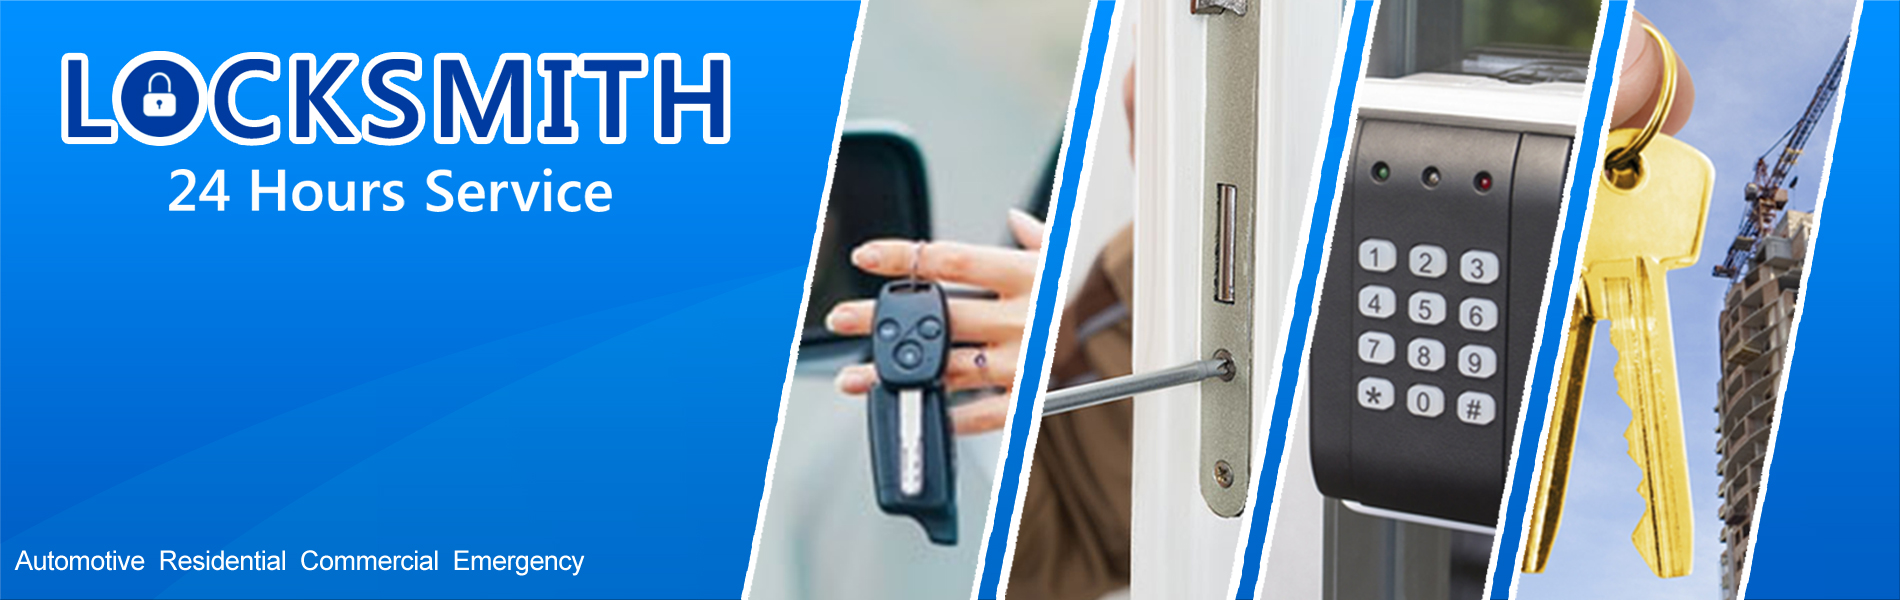 Los Angeles Emerald Locksmith, Los Angeles, CA 310-359-6638